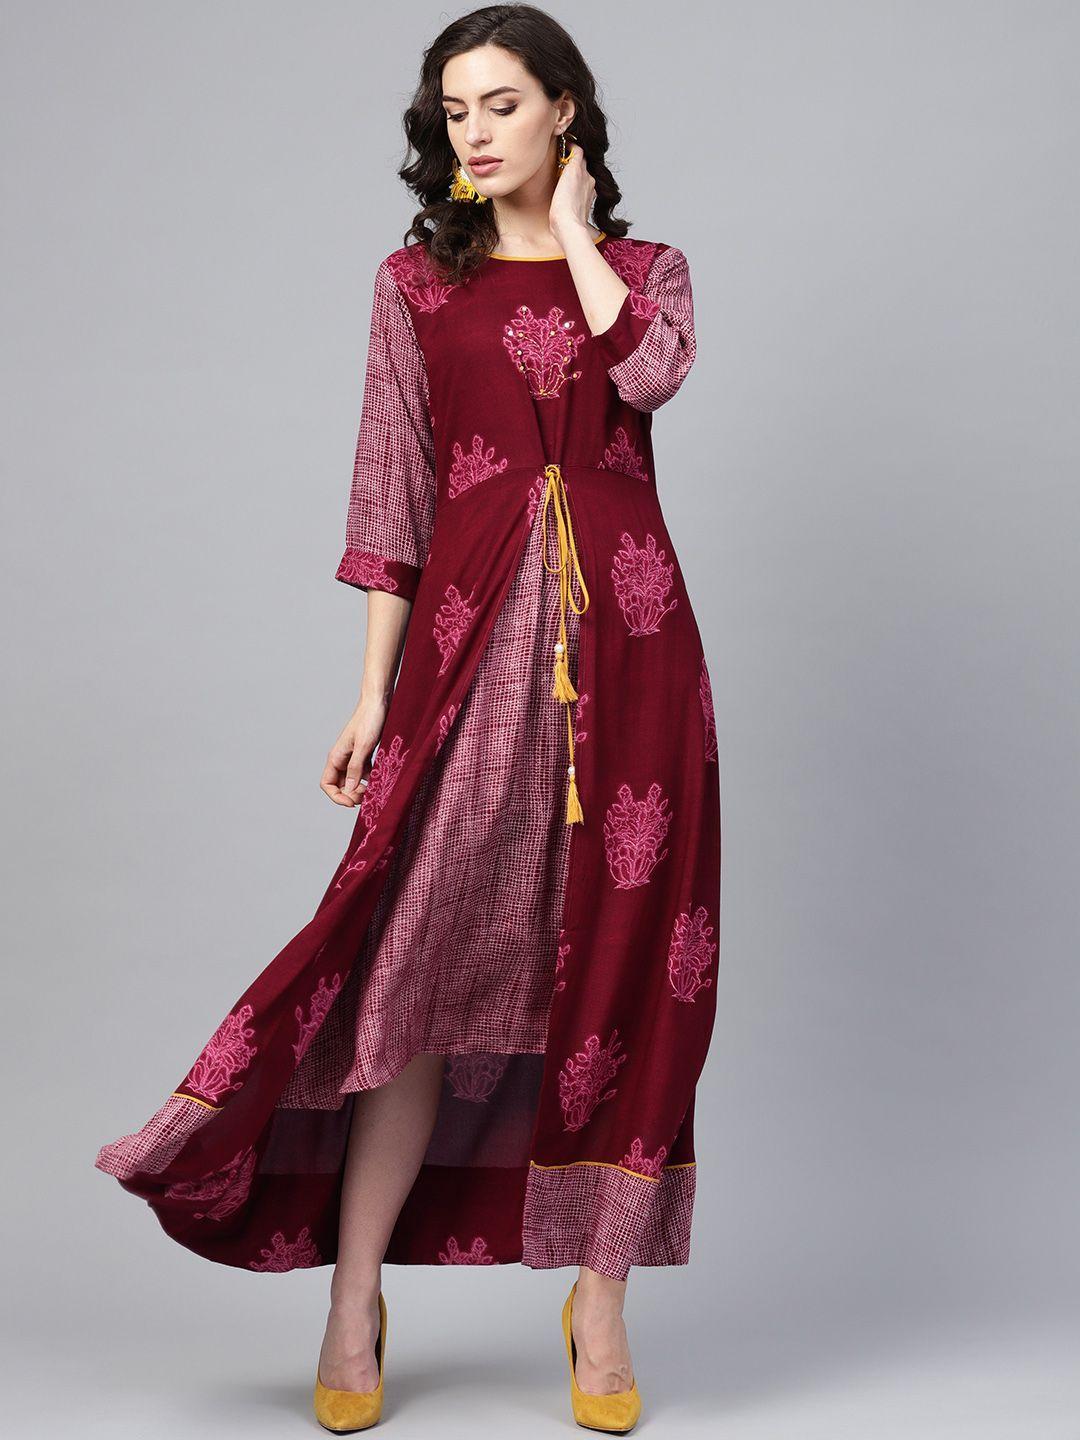 Buy Shree Lovable Wine Rayon Floral Dress At Best Price In India Giyim Bohem